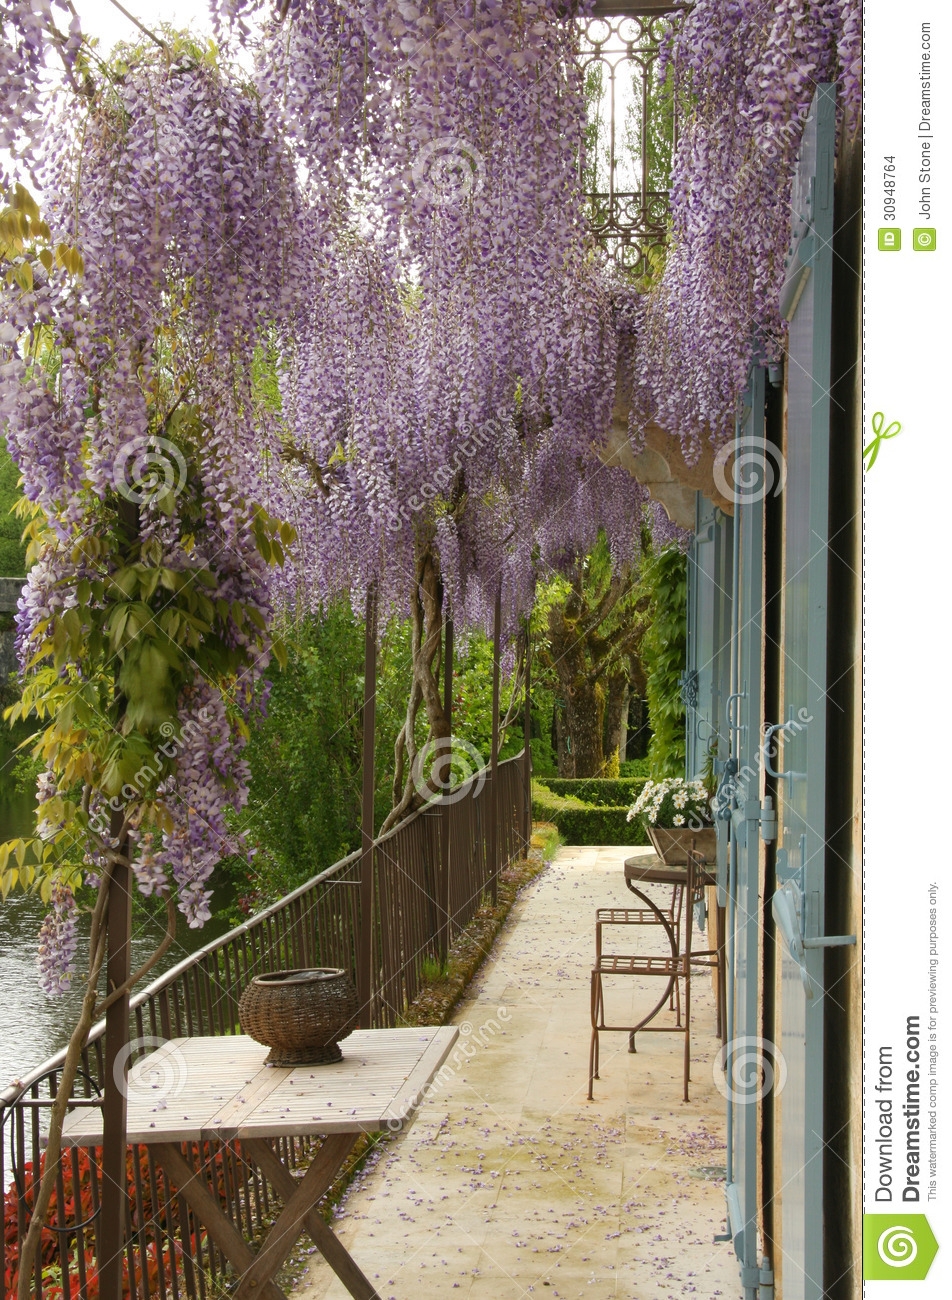 fleurs de glycine au dessus de balcon photo stock image. Black Bedroom Furniture Sets. Home Design Ideas